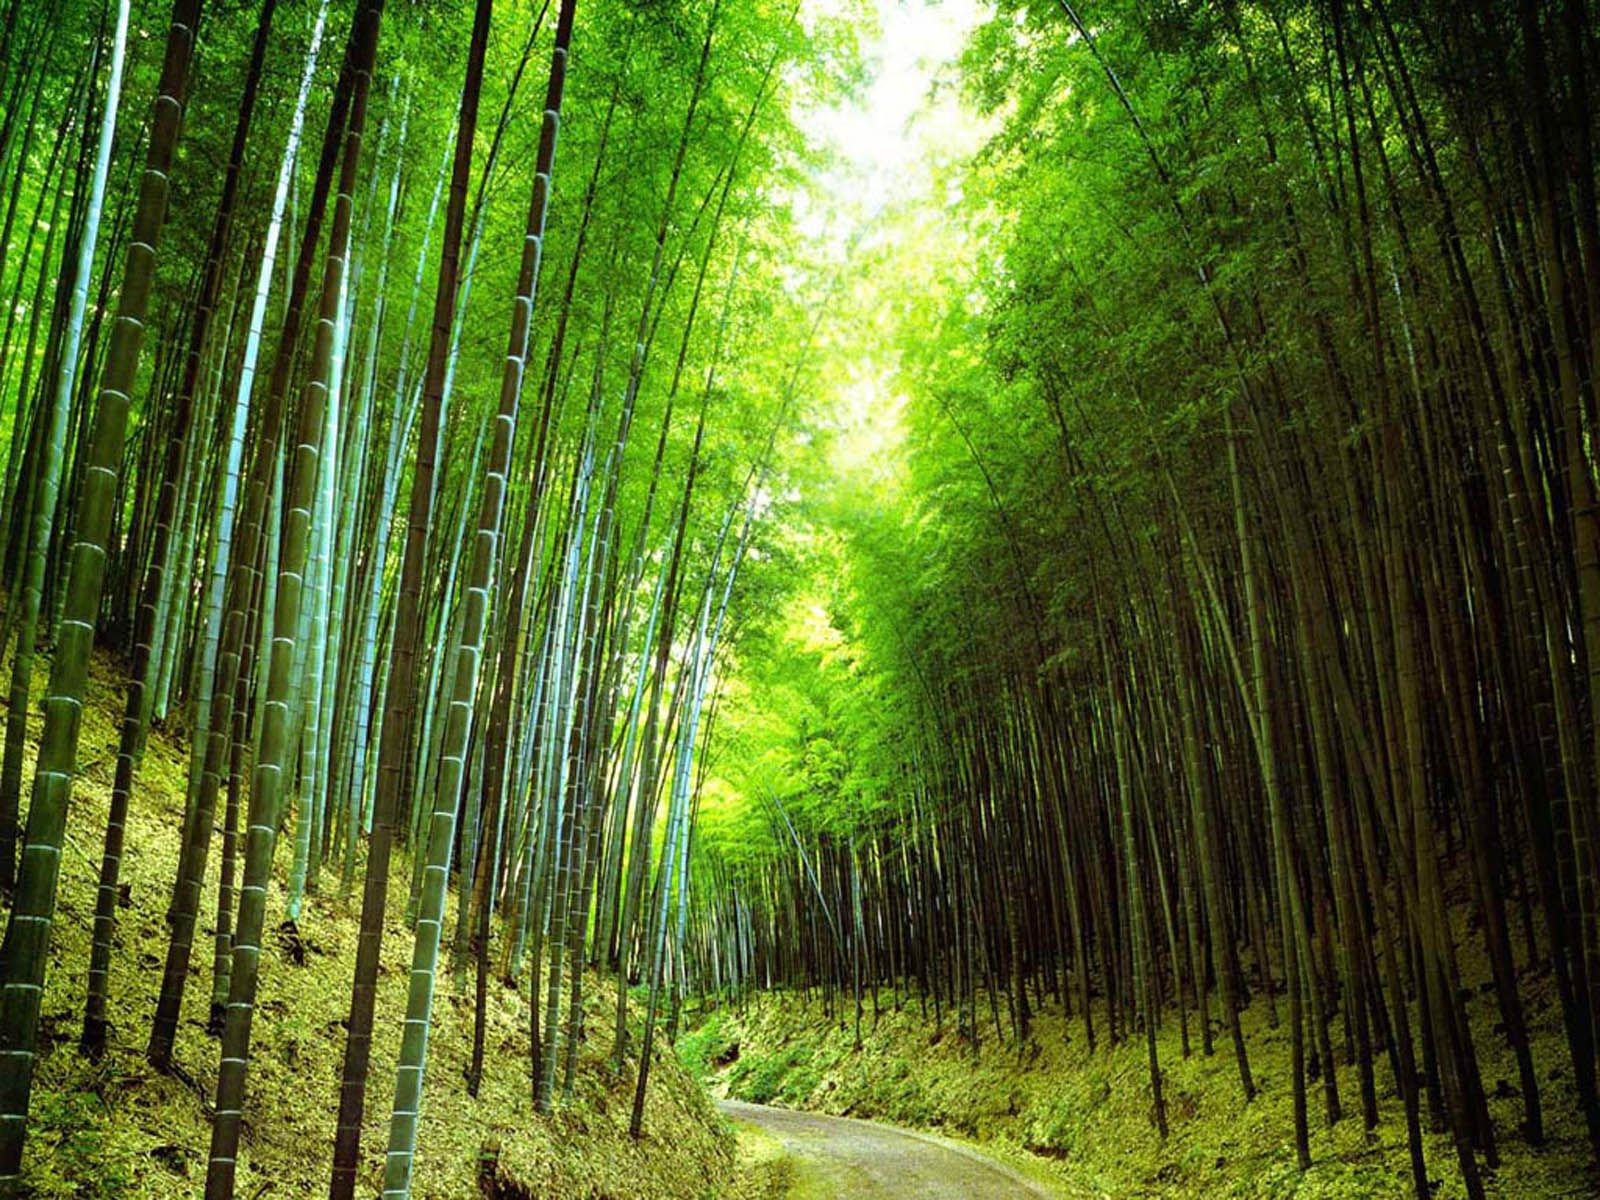 bamboo tree forest hd wallpapers bamboo tree forest hd wallpapers